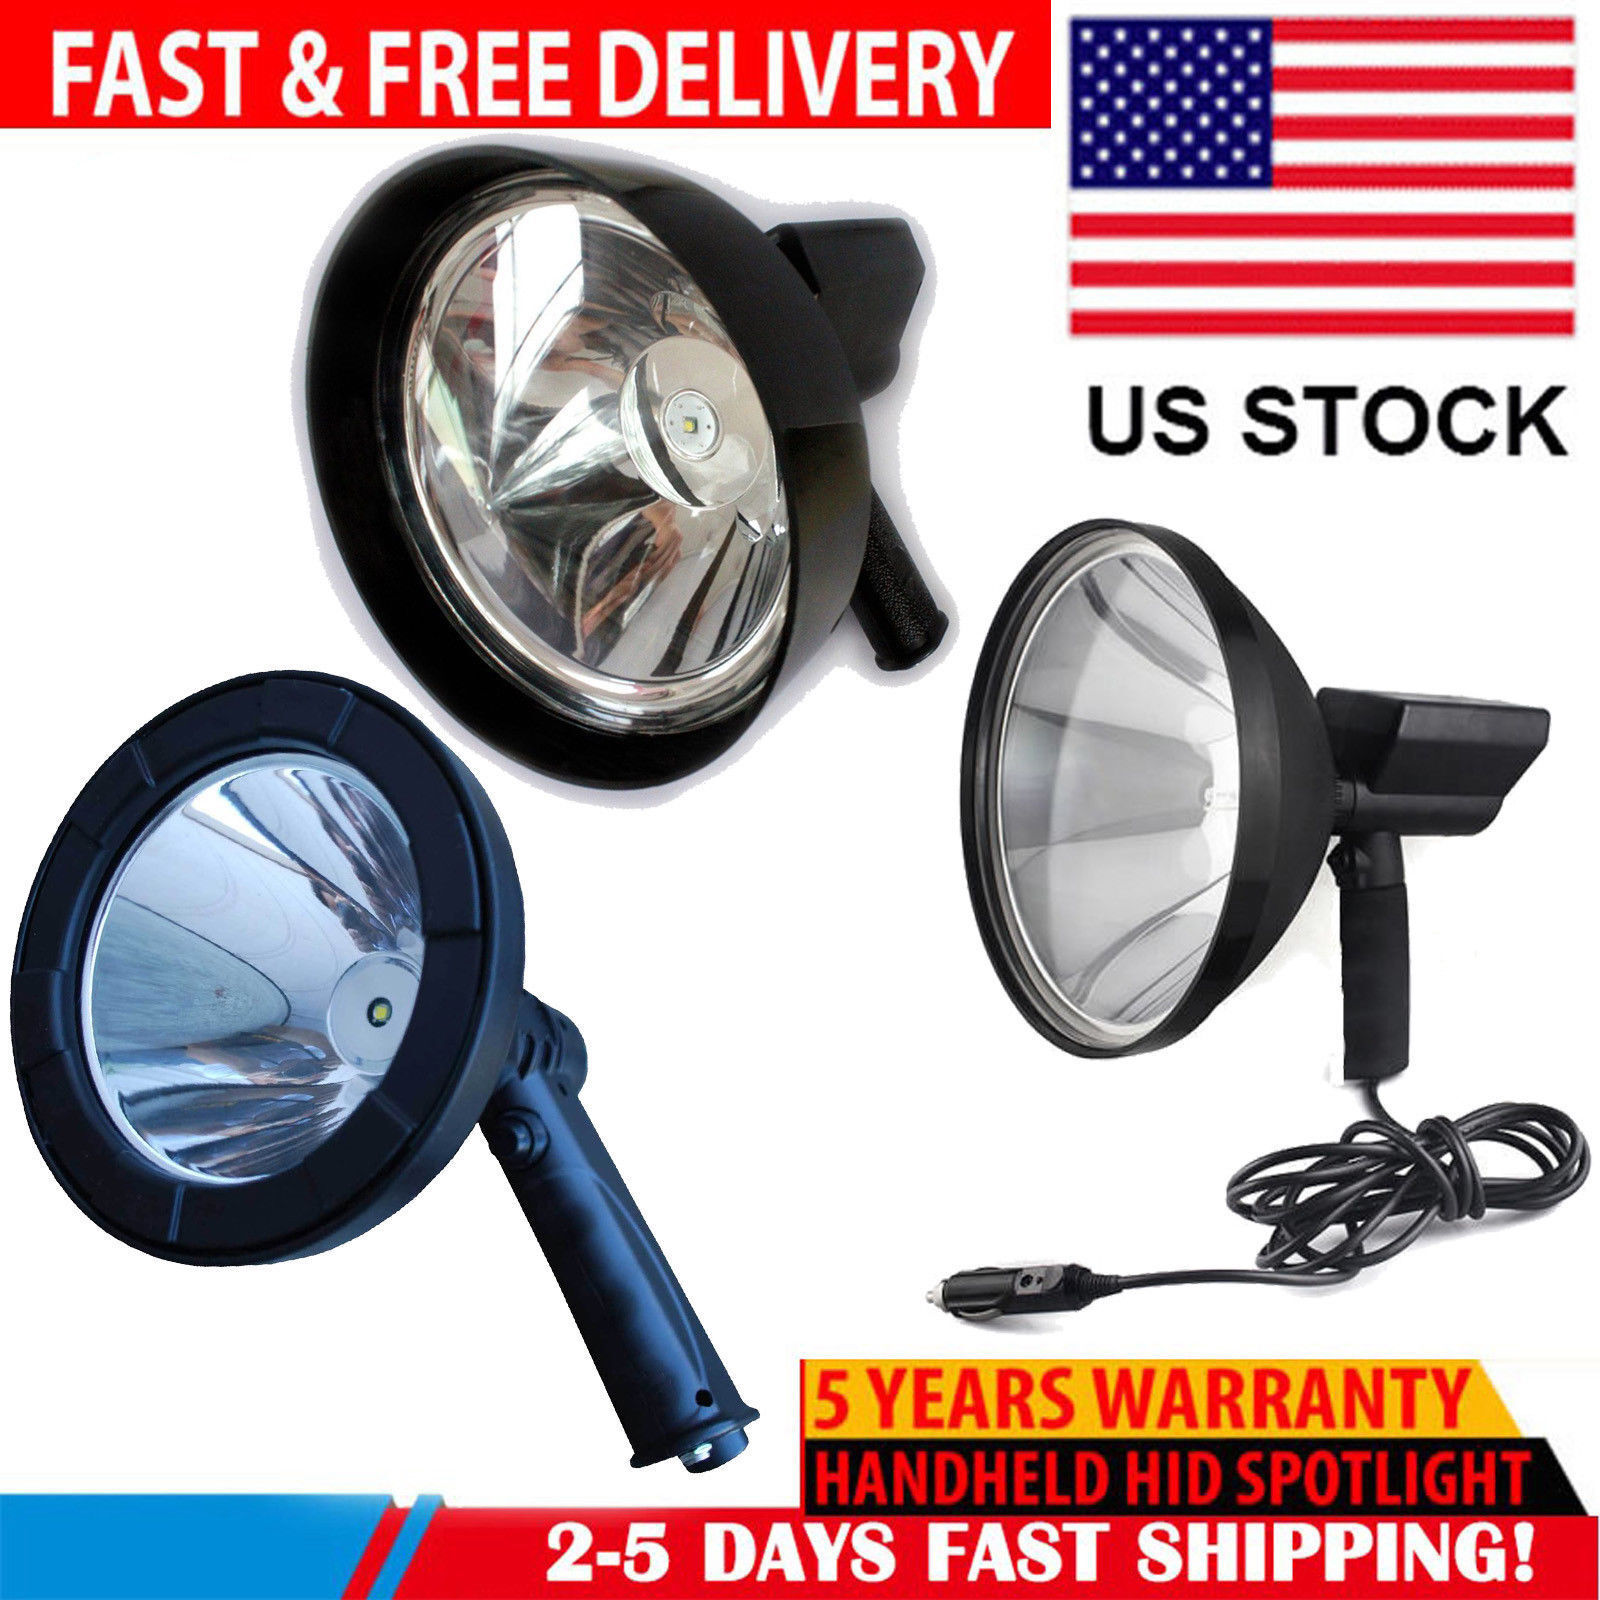 1200 Watt Waterproof LED HID Spotlight Handheld Camping Boating Flashlight Light